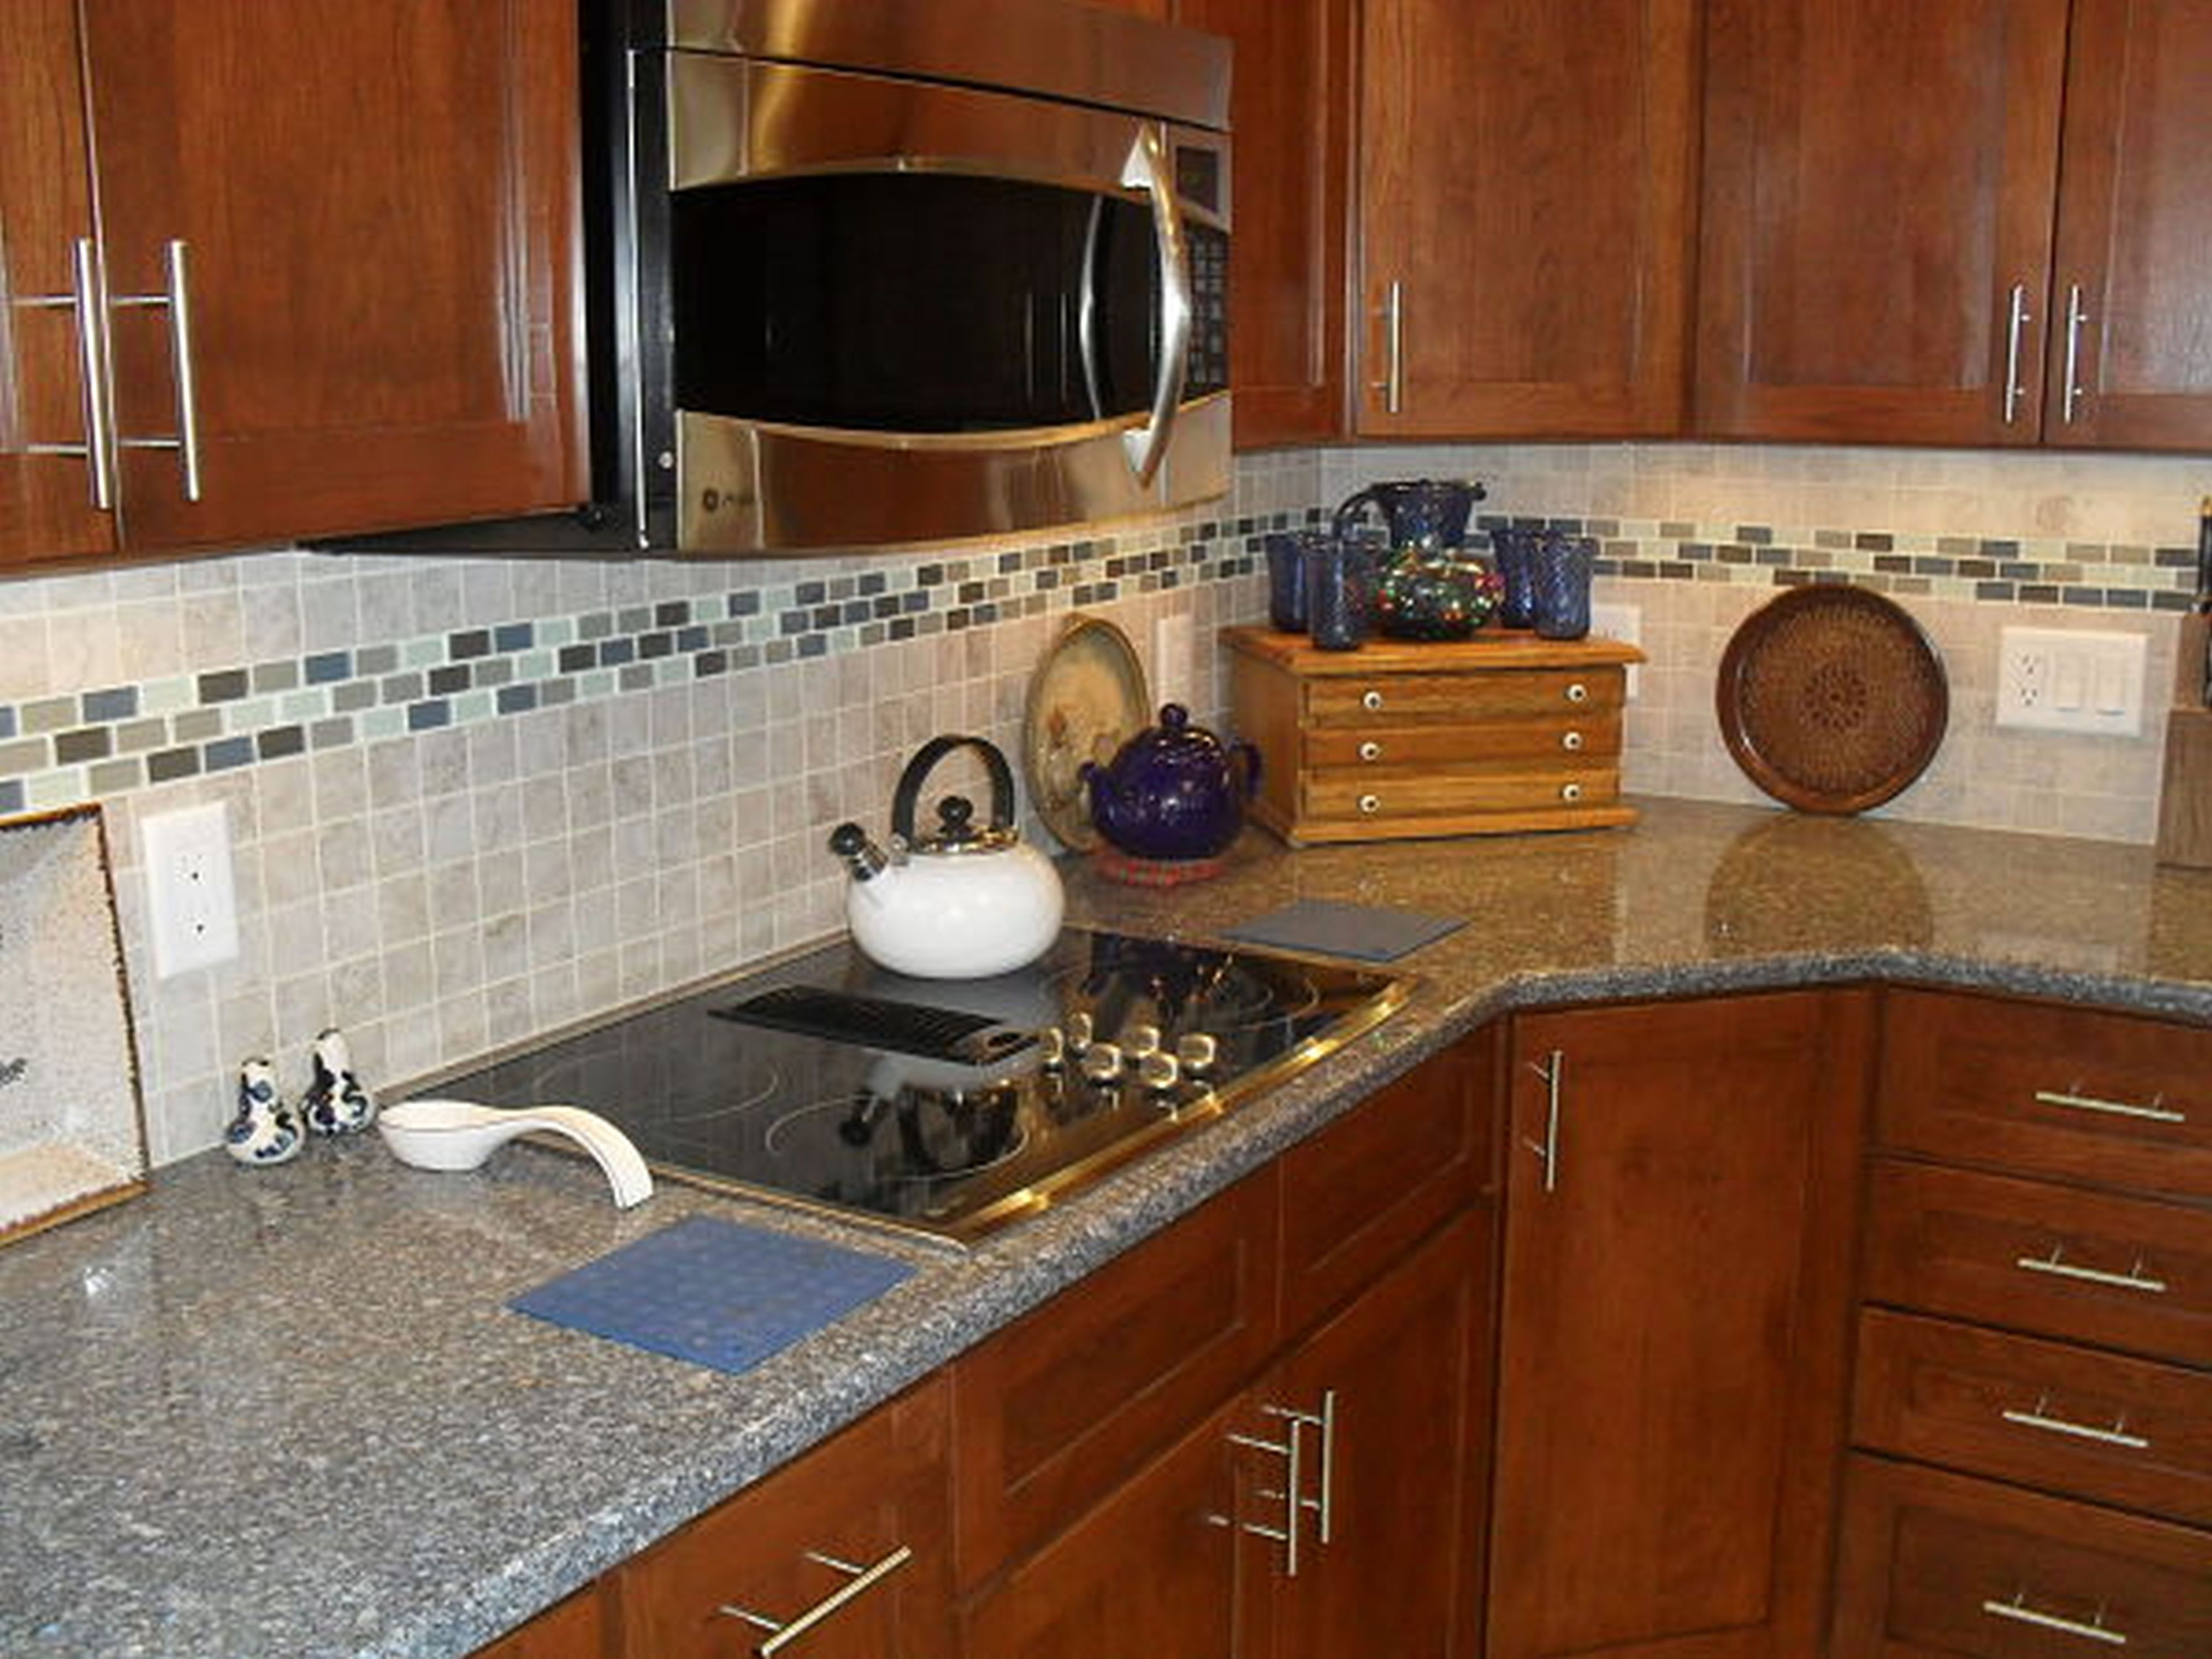 1000+ images about Kitchen countertops on Pinterest